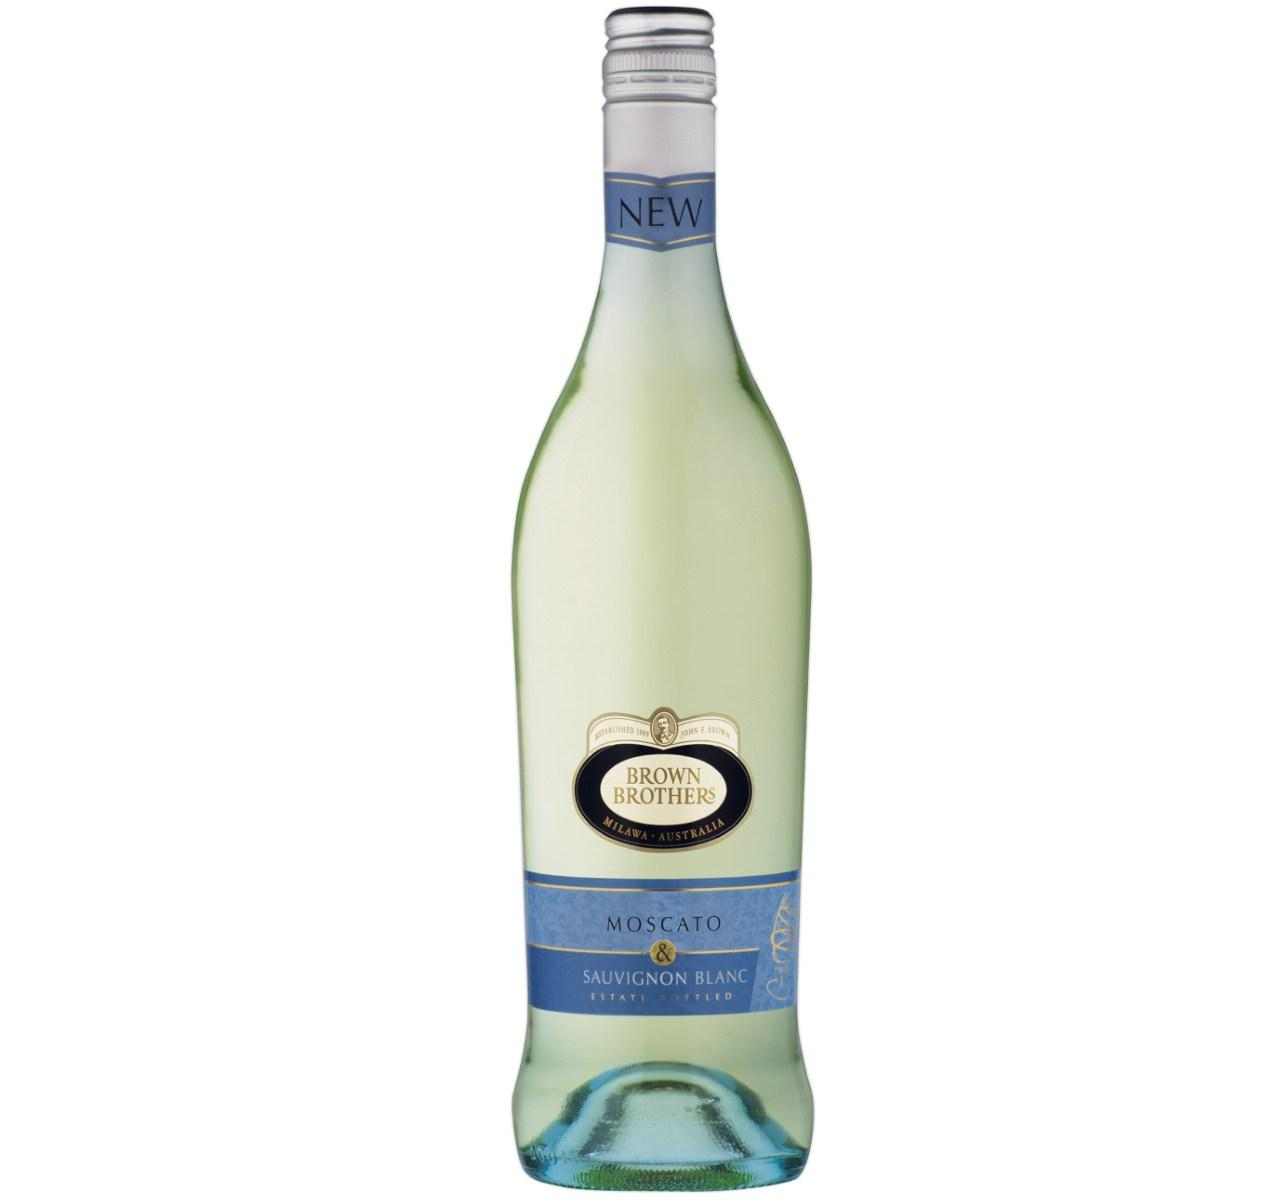 Brown Brothers Moscato Sauvignon Blanc 750ml By Newcastle Drinks.